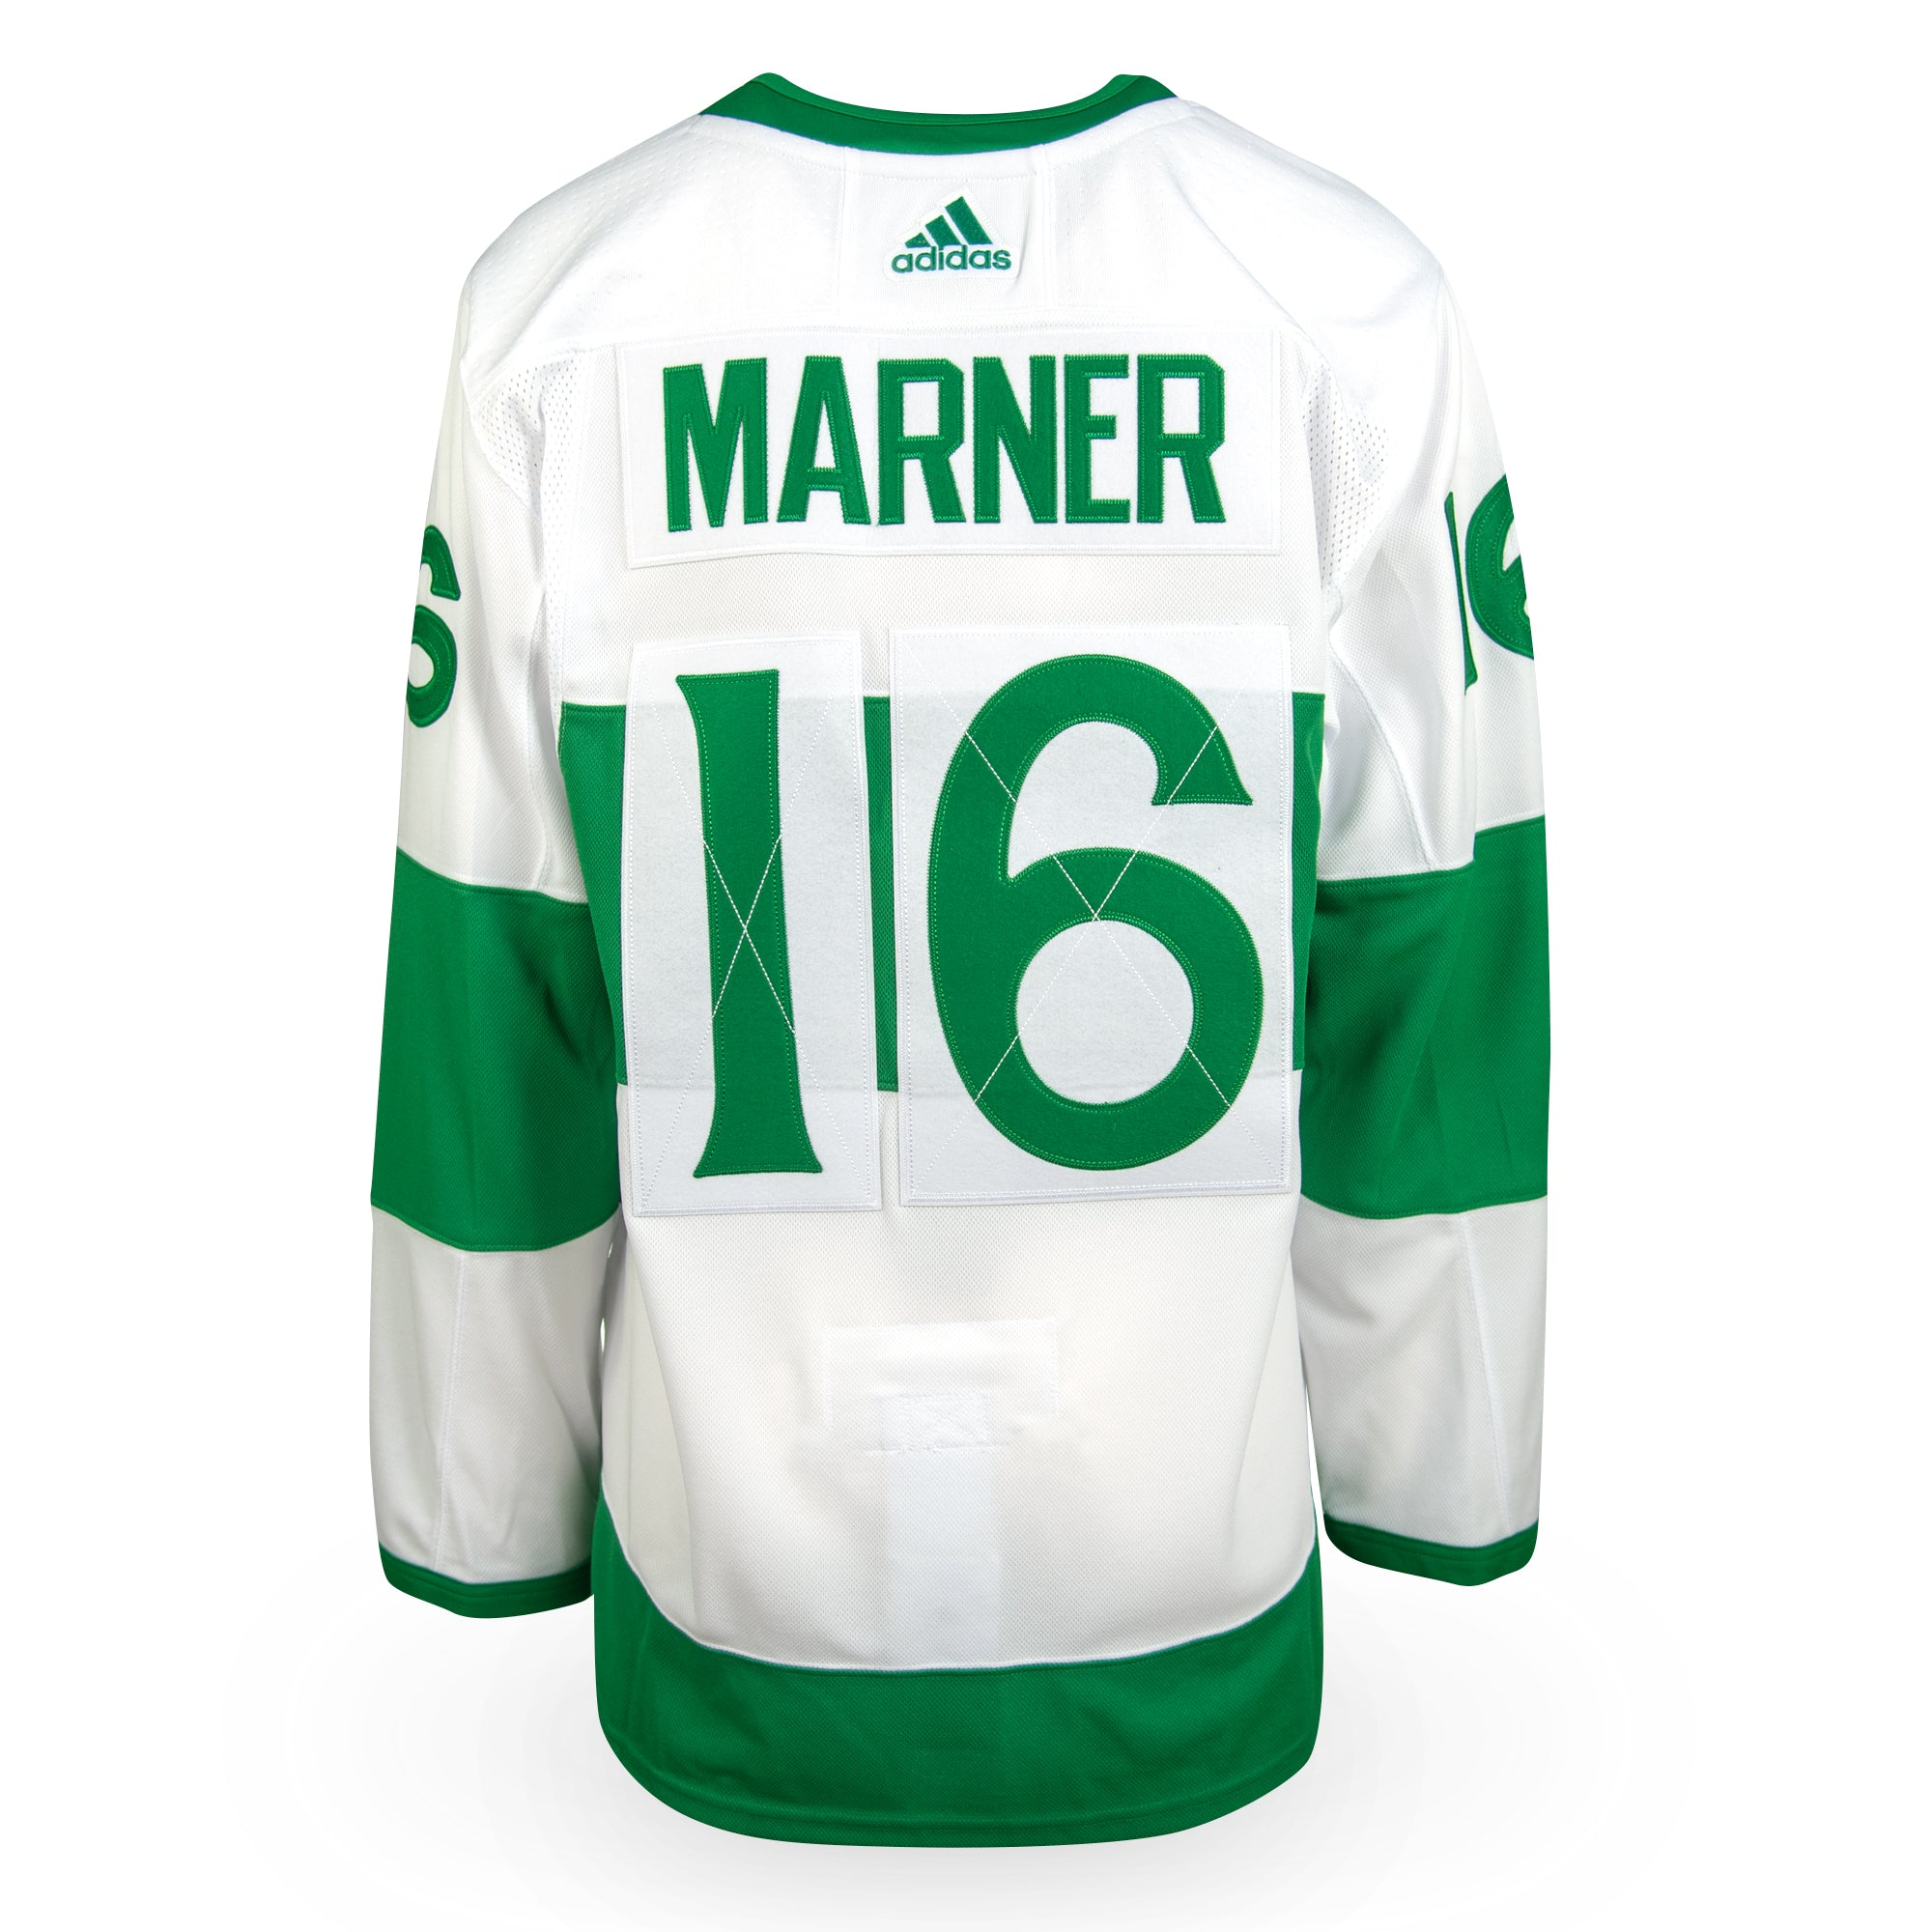 St. Pats Adidas Men's Authentic Jersey - MARNER